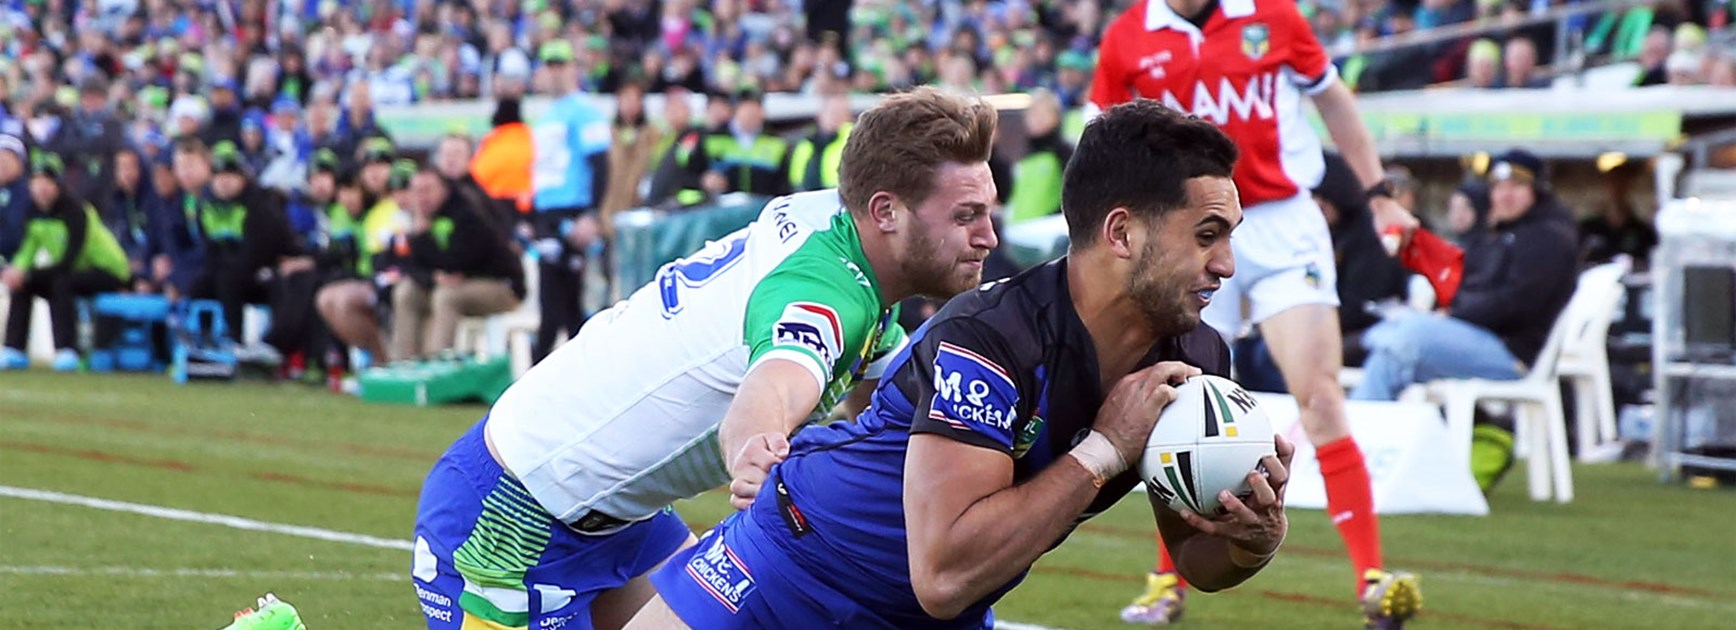 Raiders rookie Reimis Smith scored with his first touch in the NRL in Canberra on Sunday.